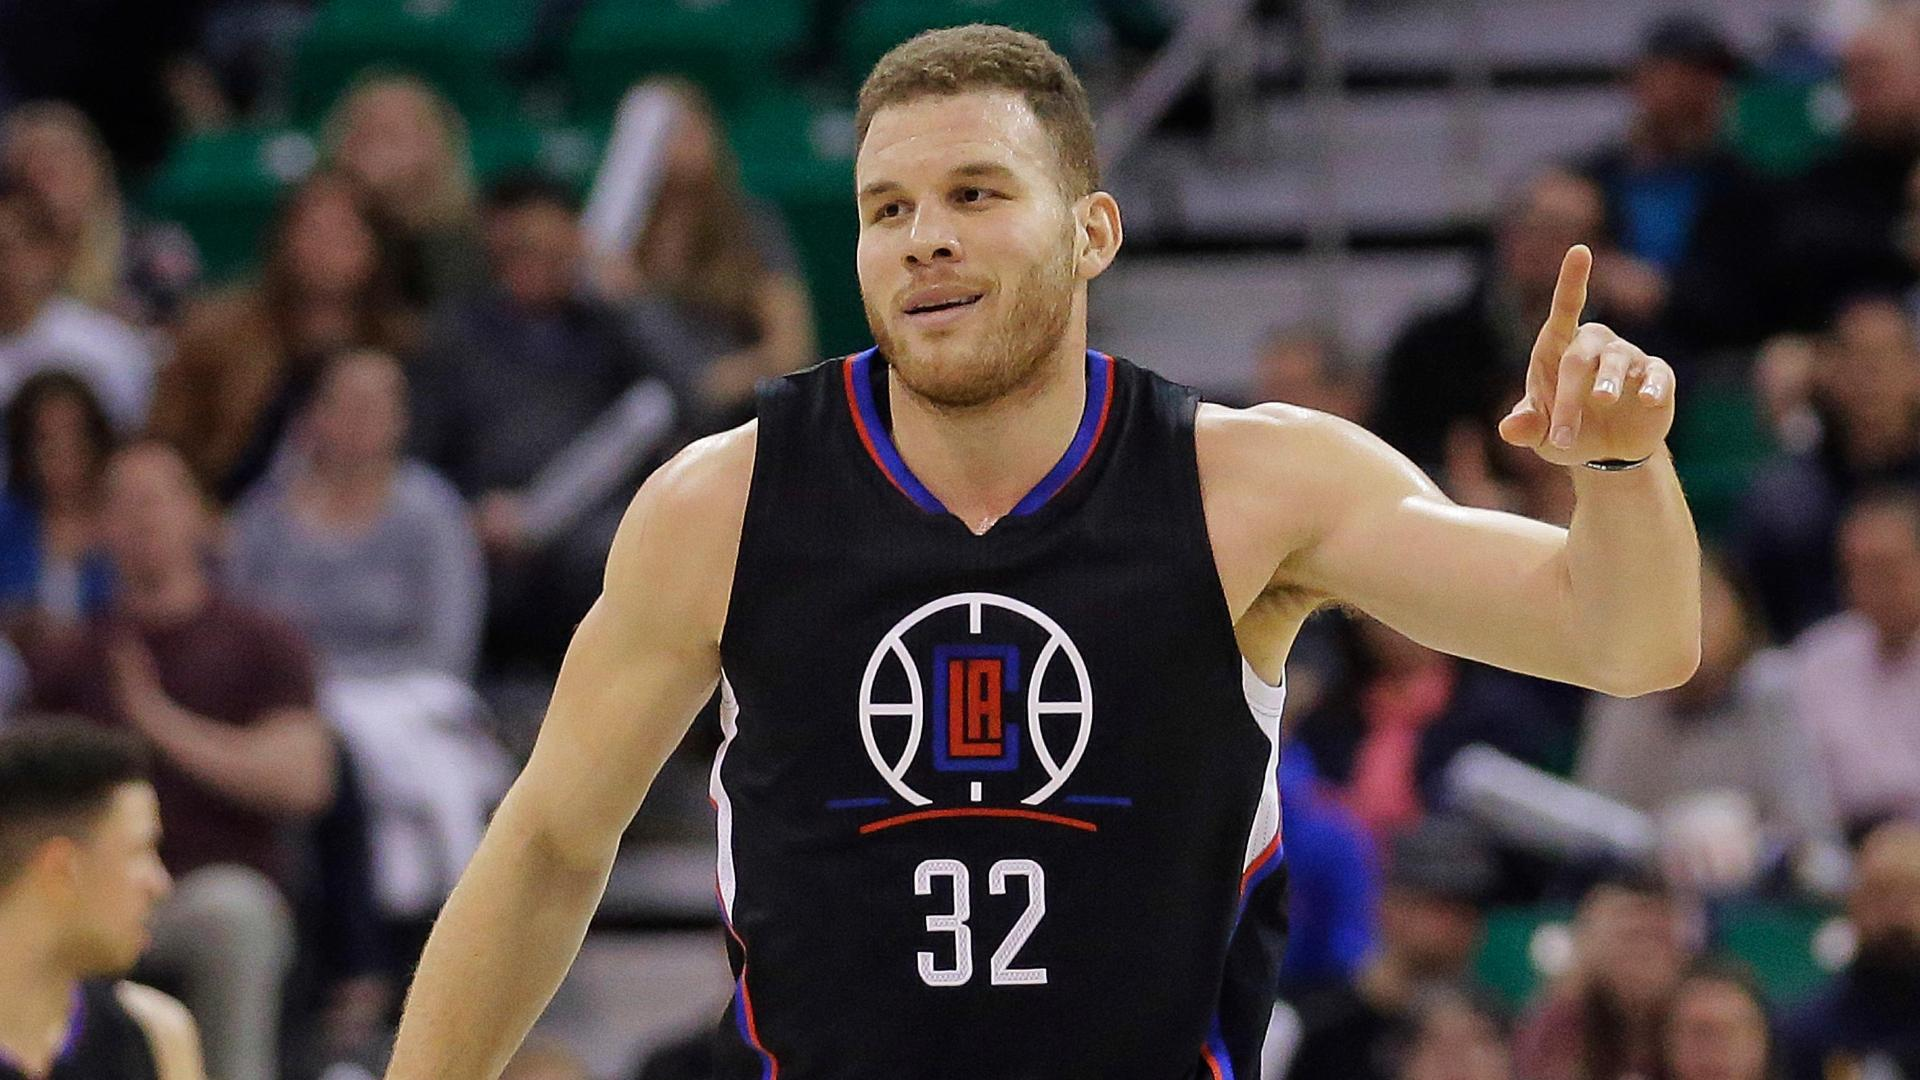 Clippers rout Jazz behind Griffin's double-double